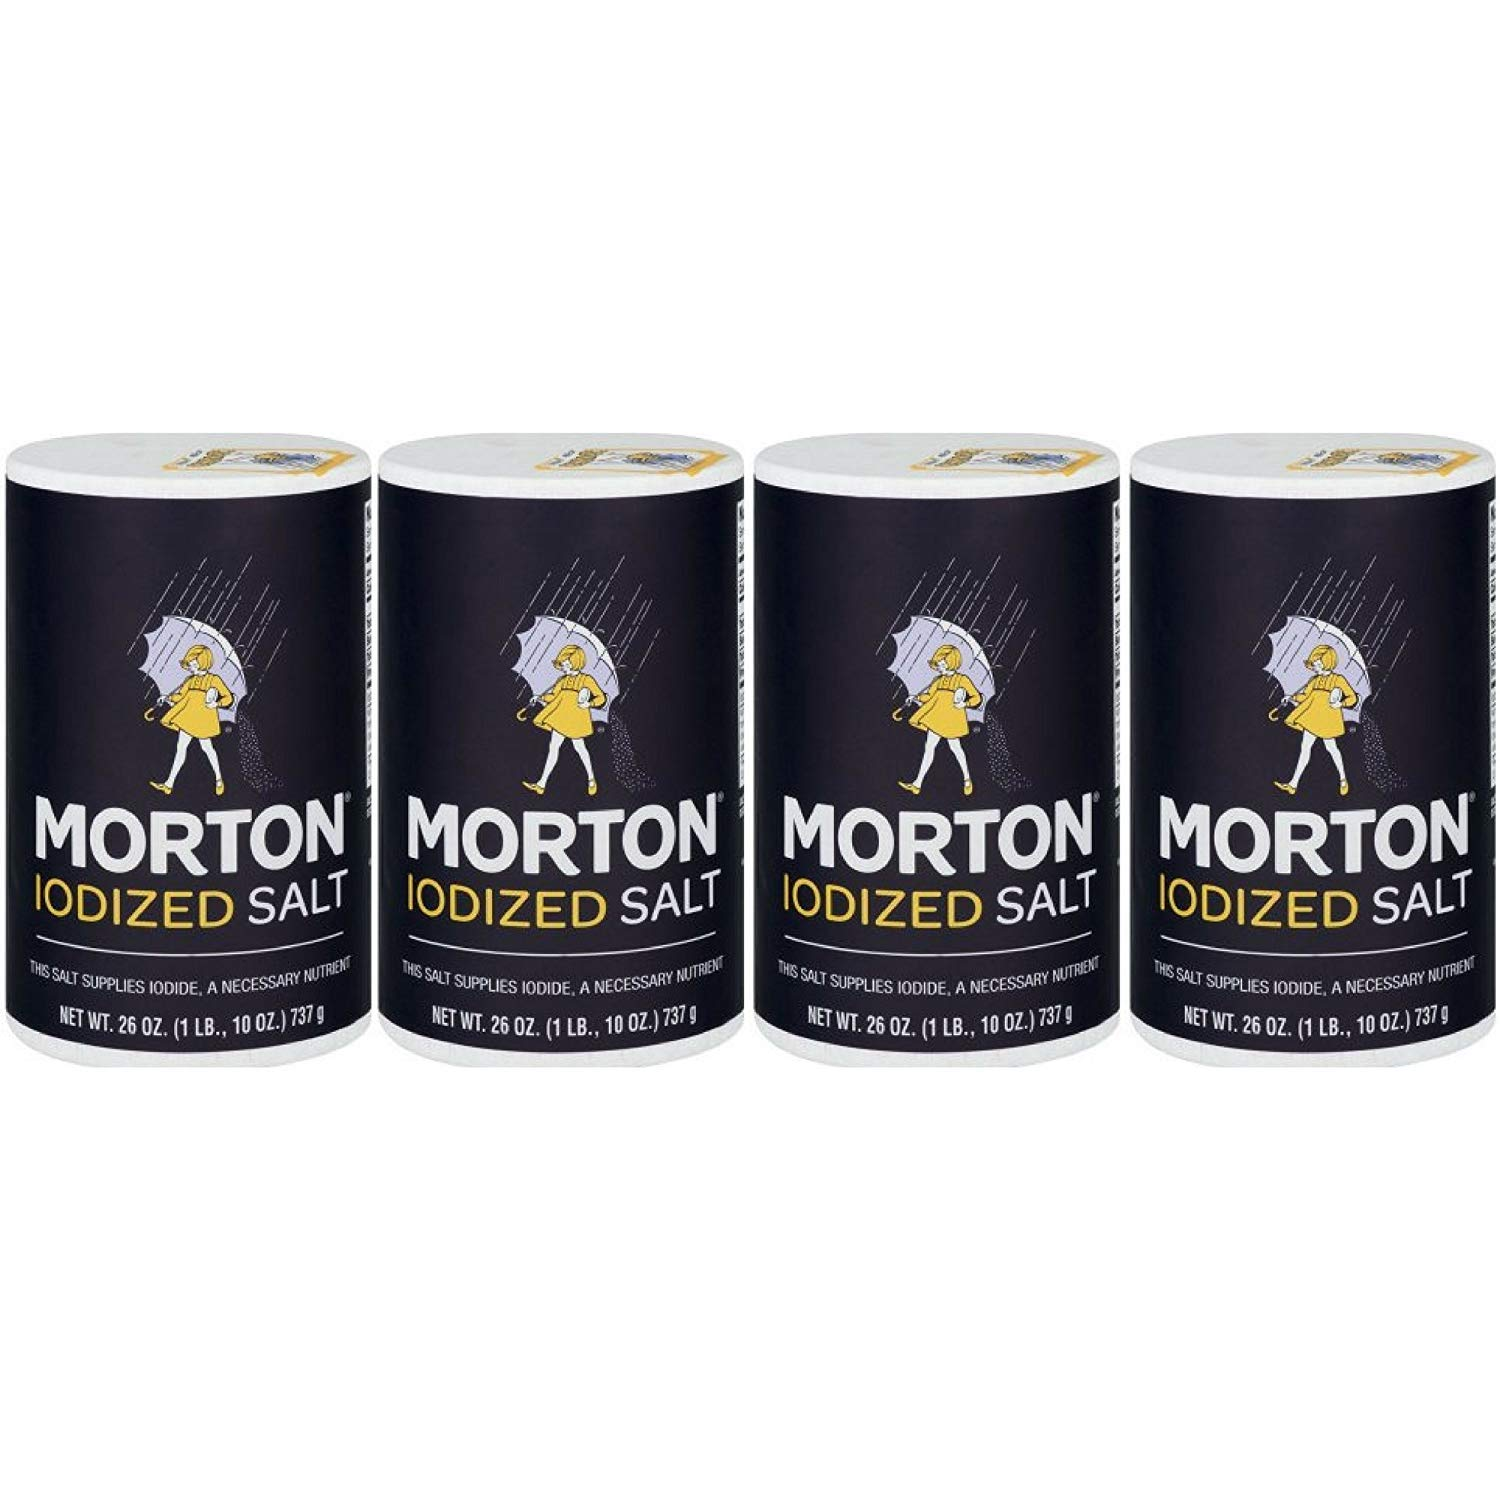 Morton Iodized Salt, 26 oz, Pack of 4 : Grocery & Gourmet Food